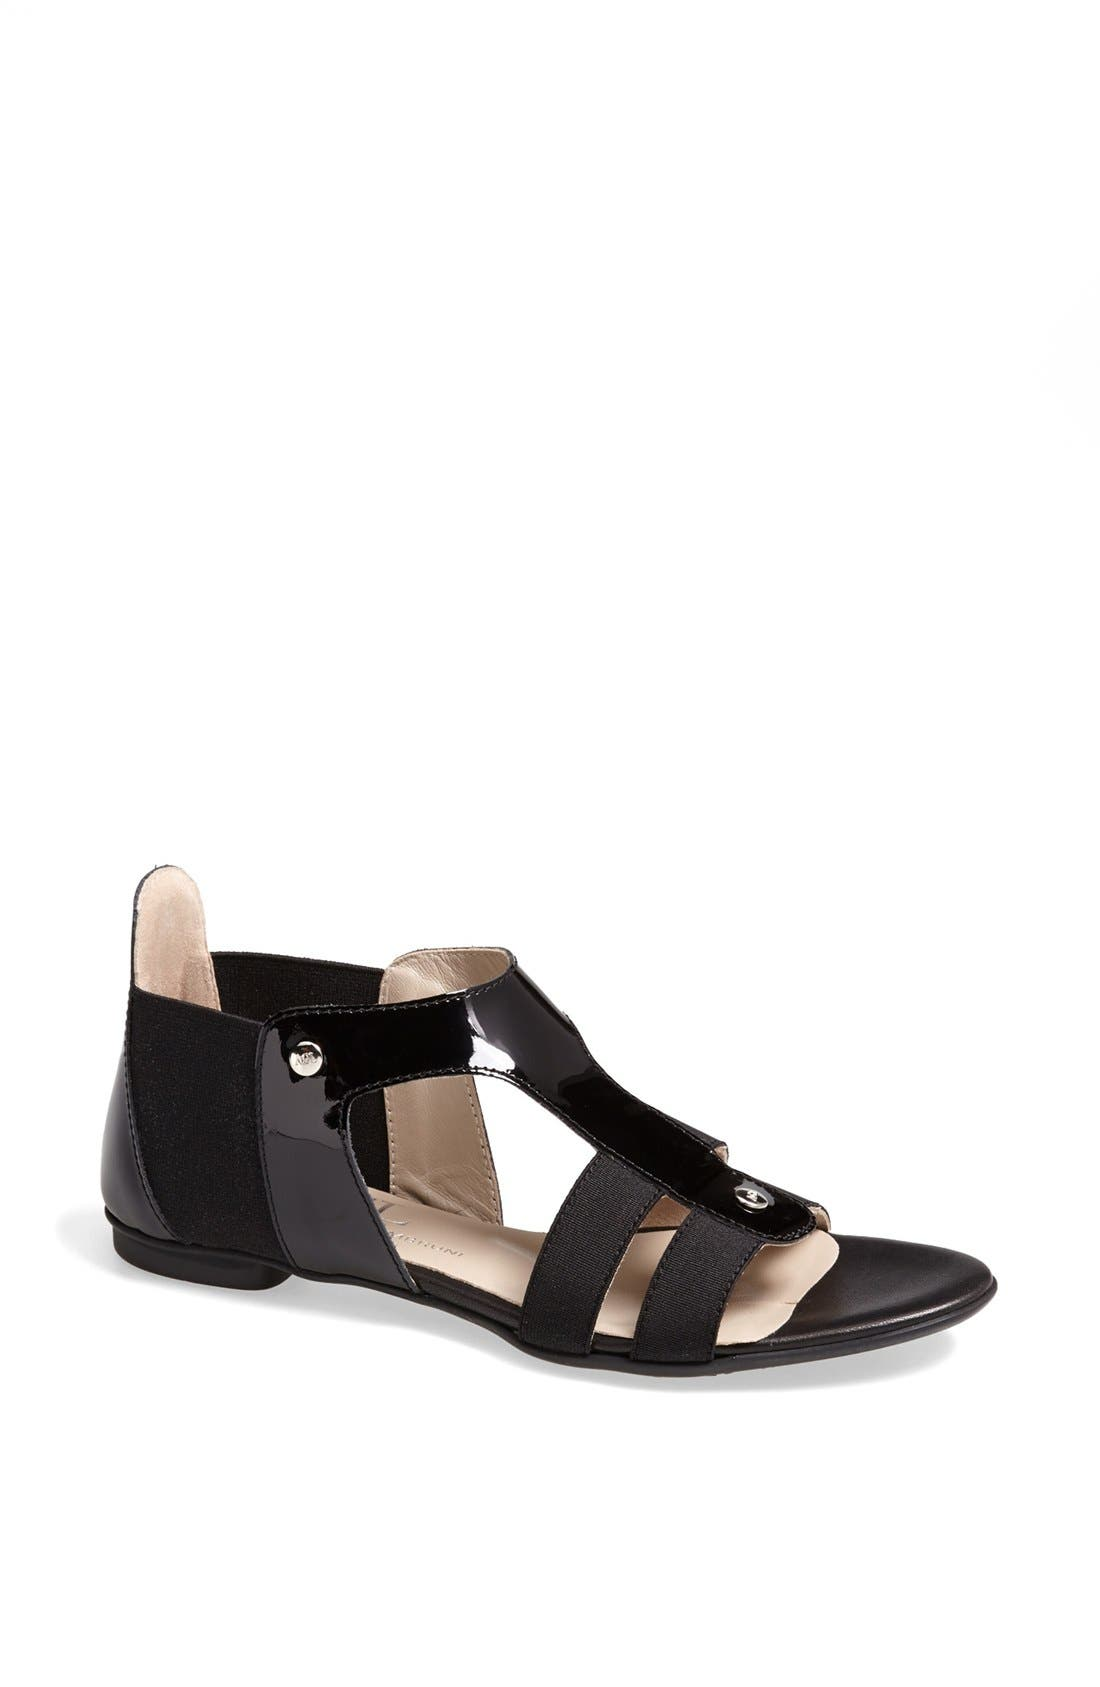 Alternate Image 1 Selected - Attilio Giusti Leombruni 'Euro' Sandal